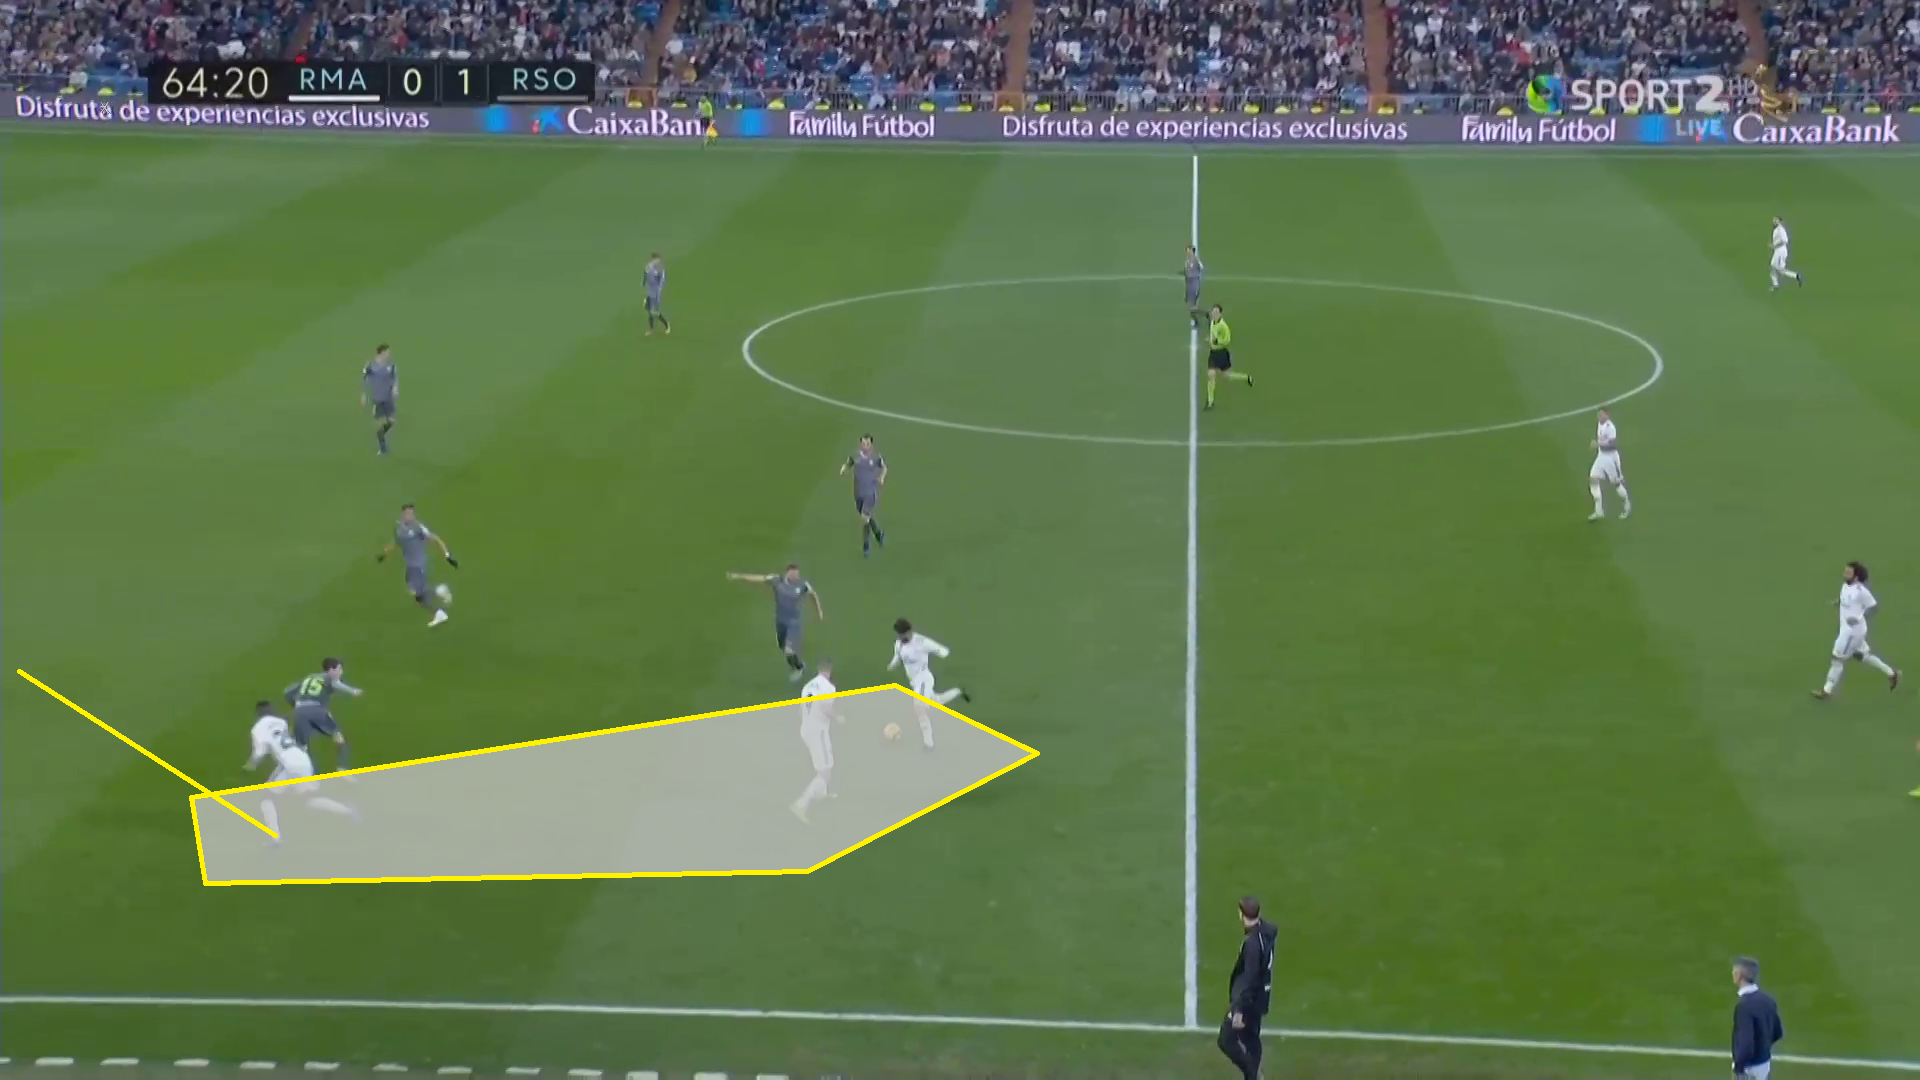 Real Madrid Real Sociedad La Liga Tactical Analysis Statistics